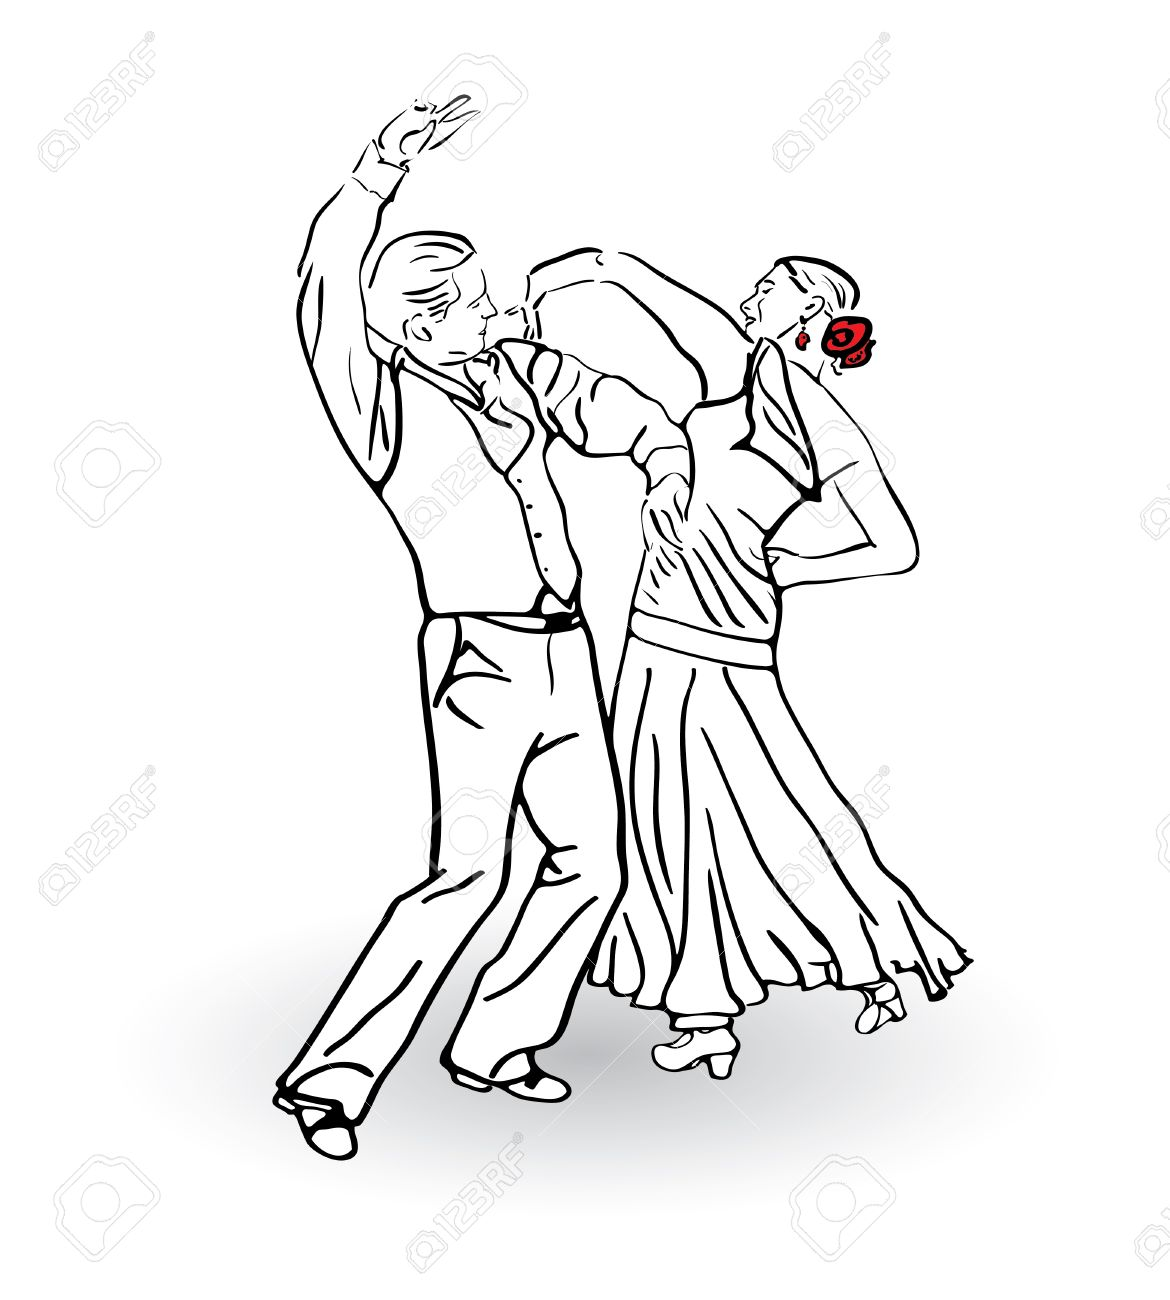 1170x1300 The Man And The Woman Dance A Tango Couple Dancing Sketch Concept